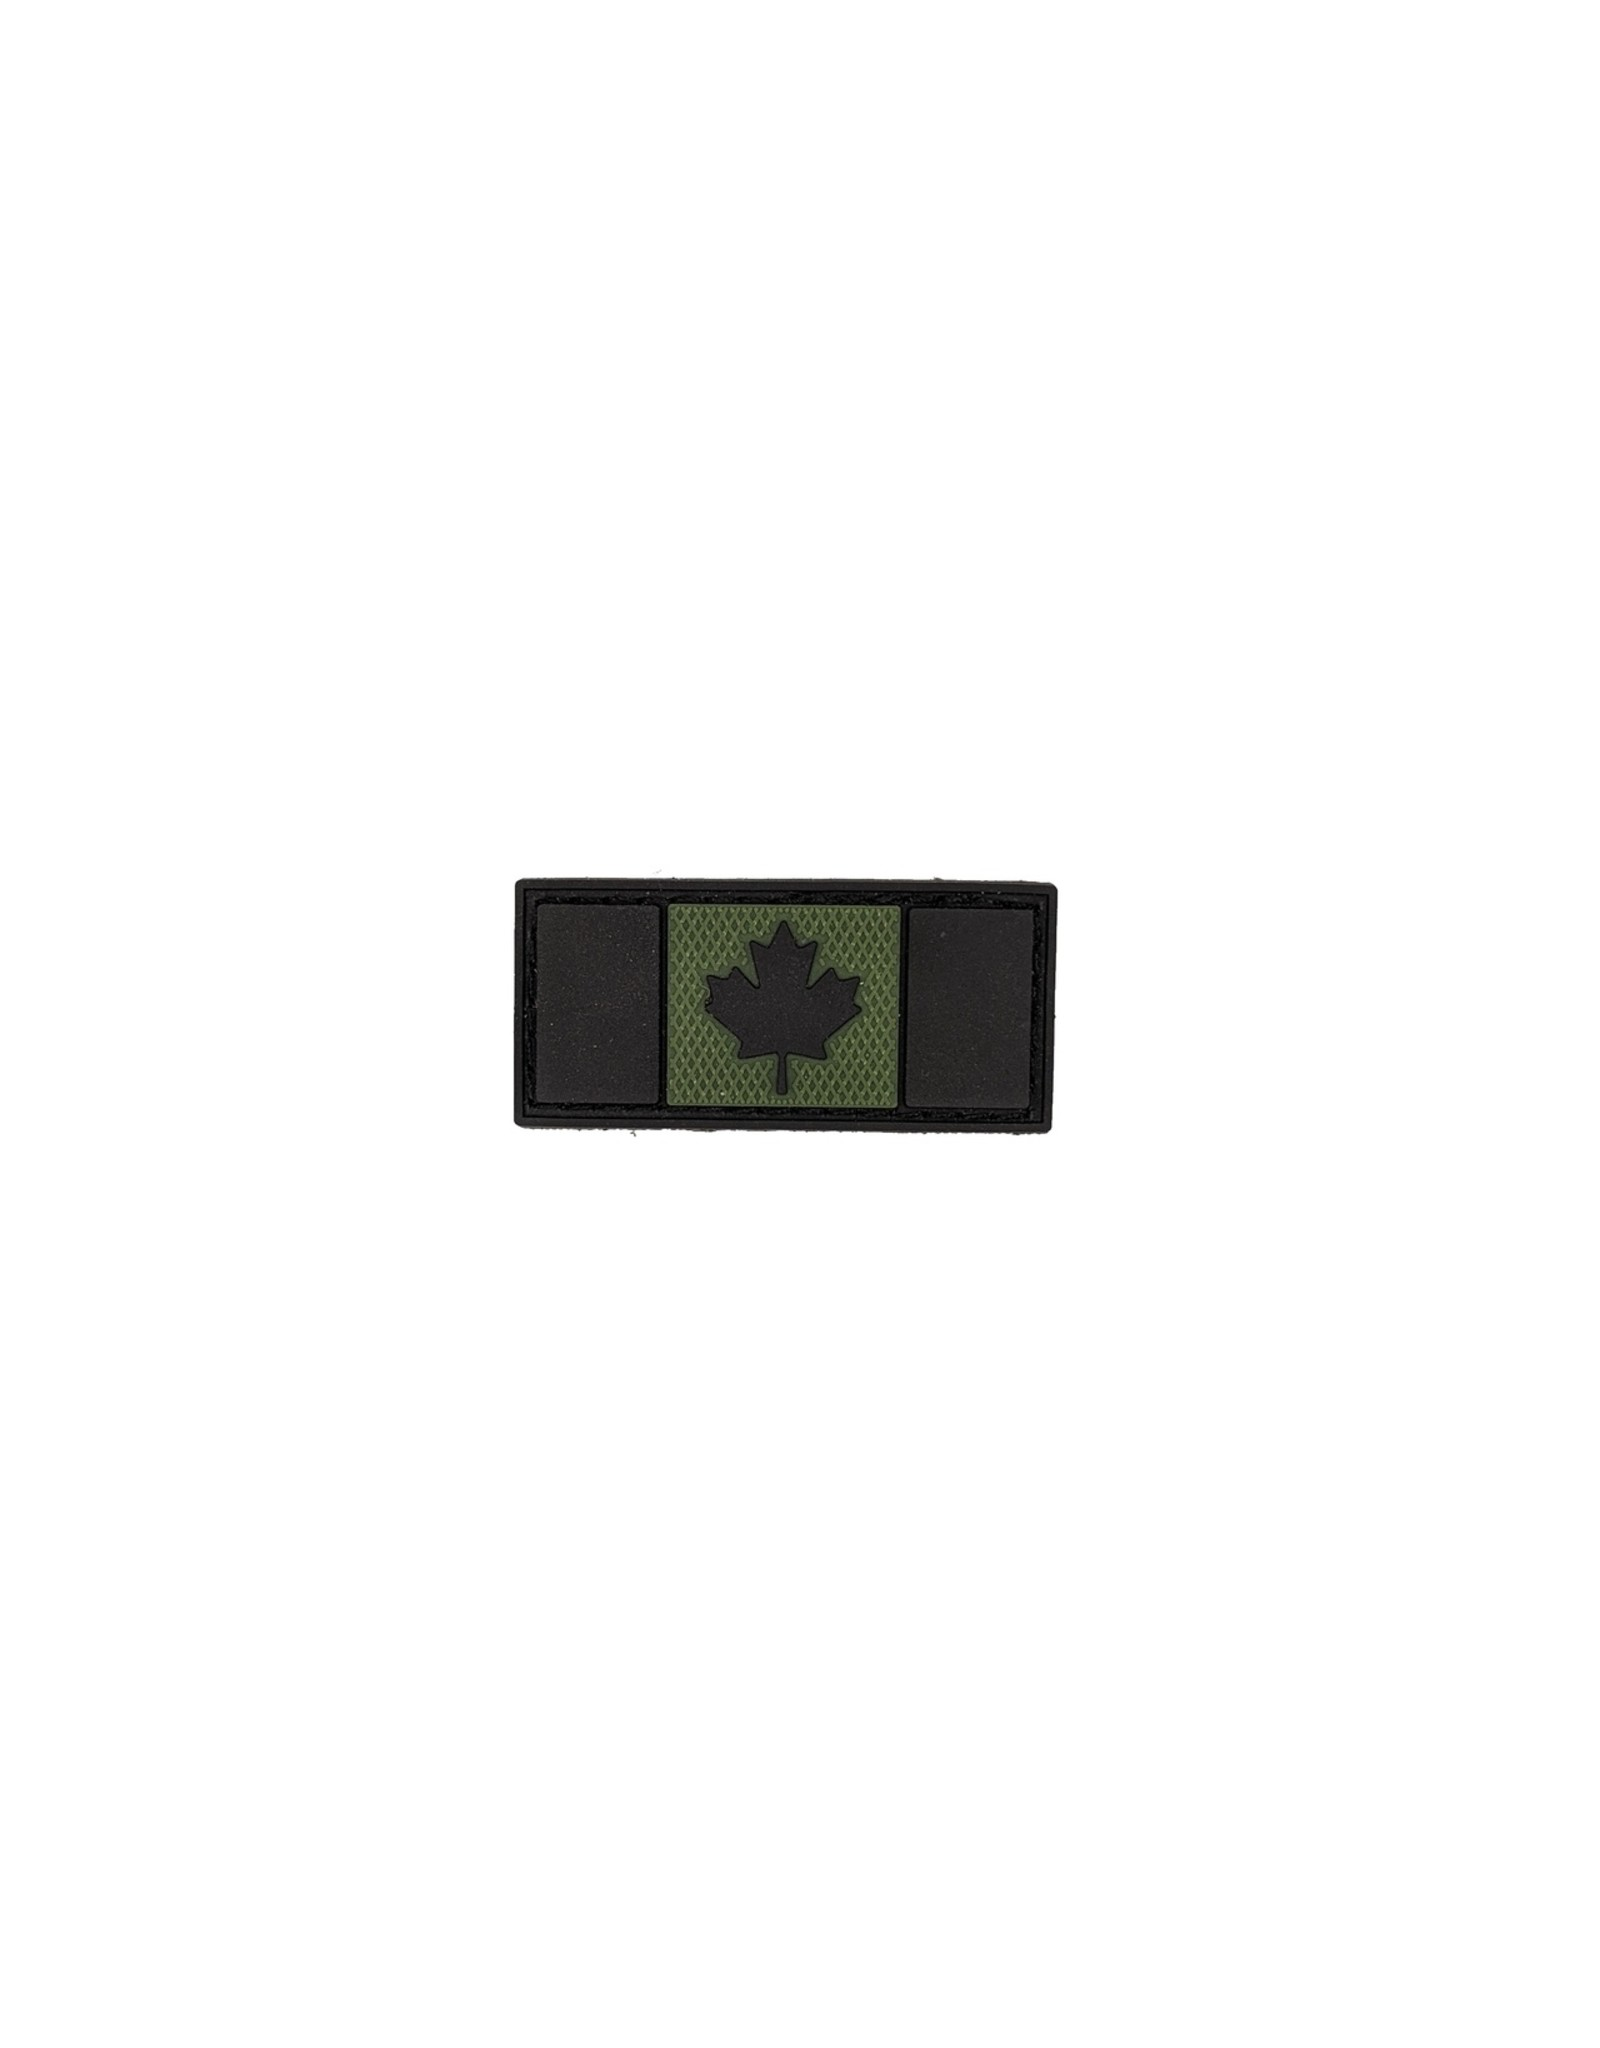 TIC Patch - CANADA FLAG 1X2 ODG